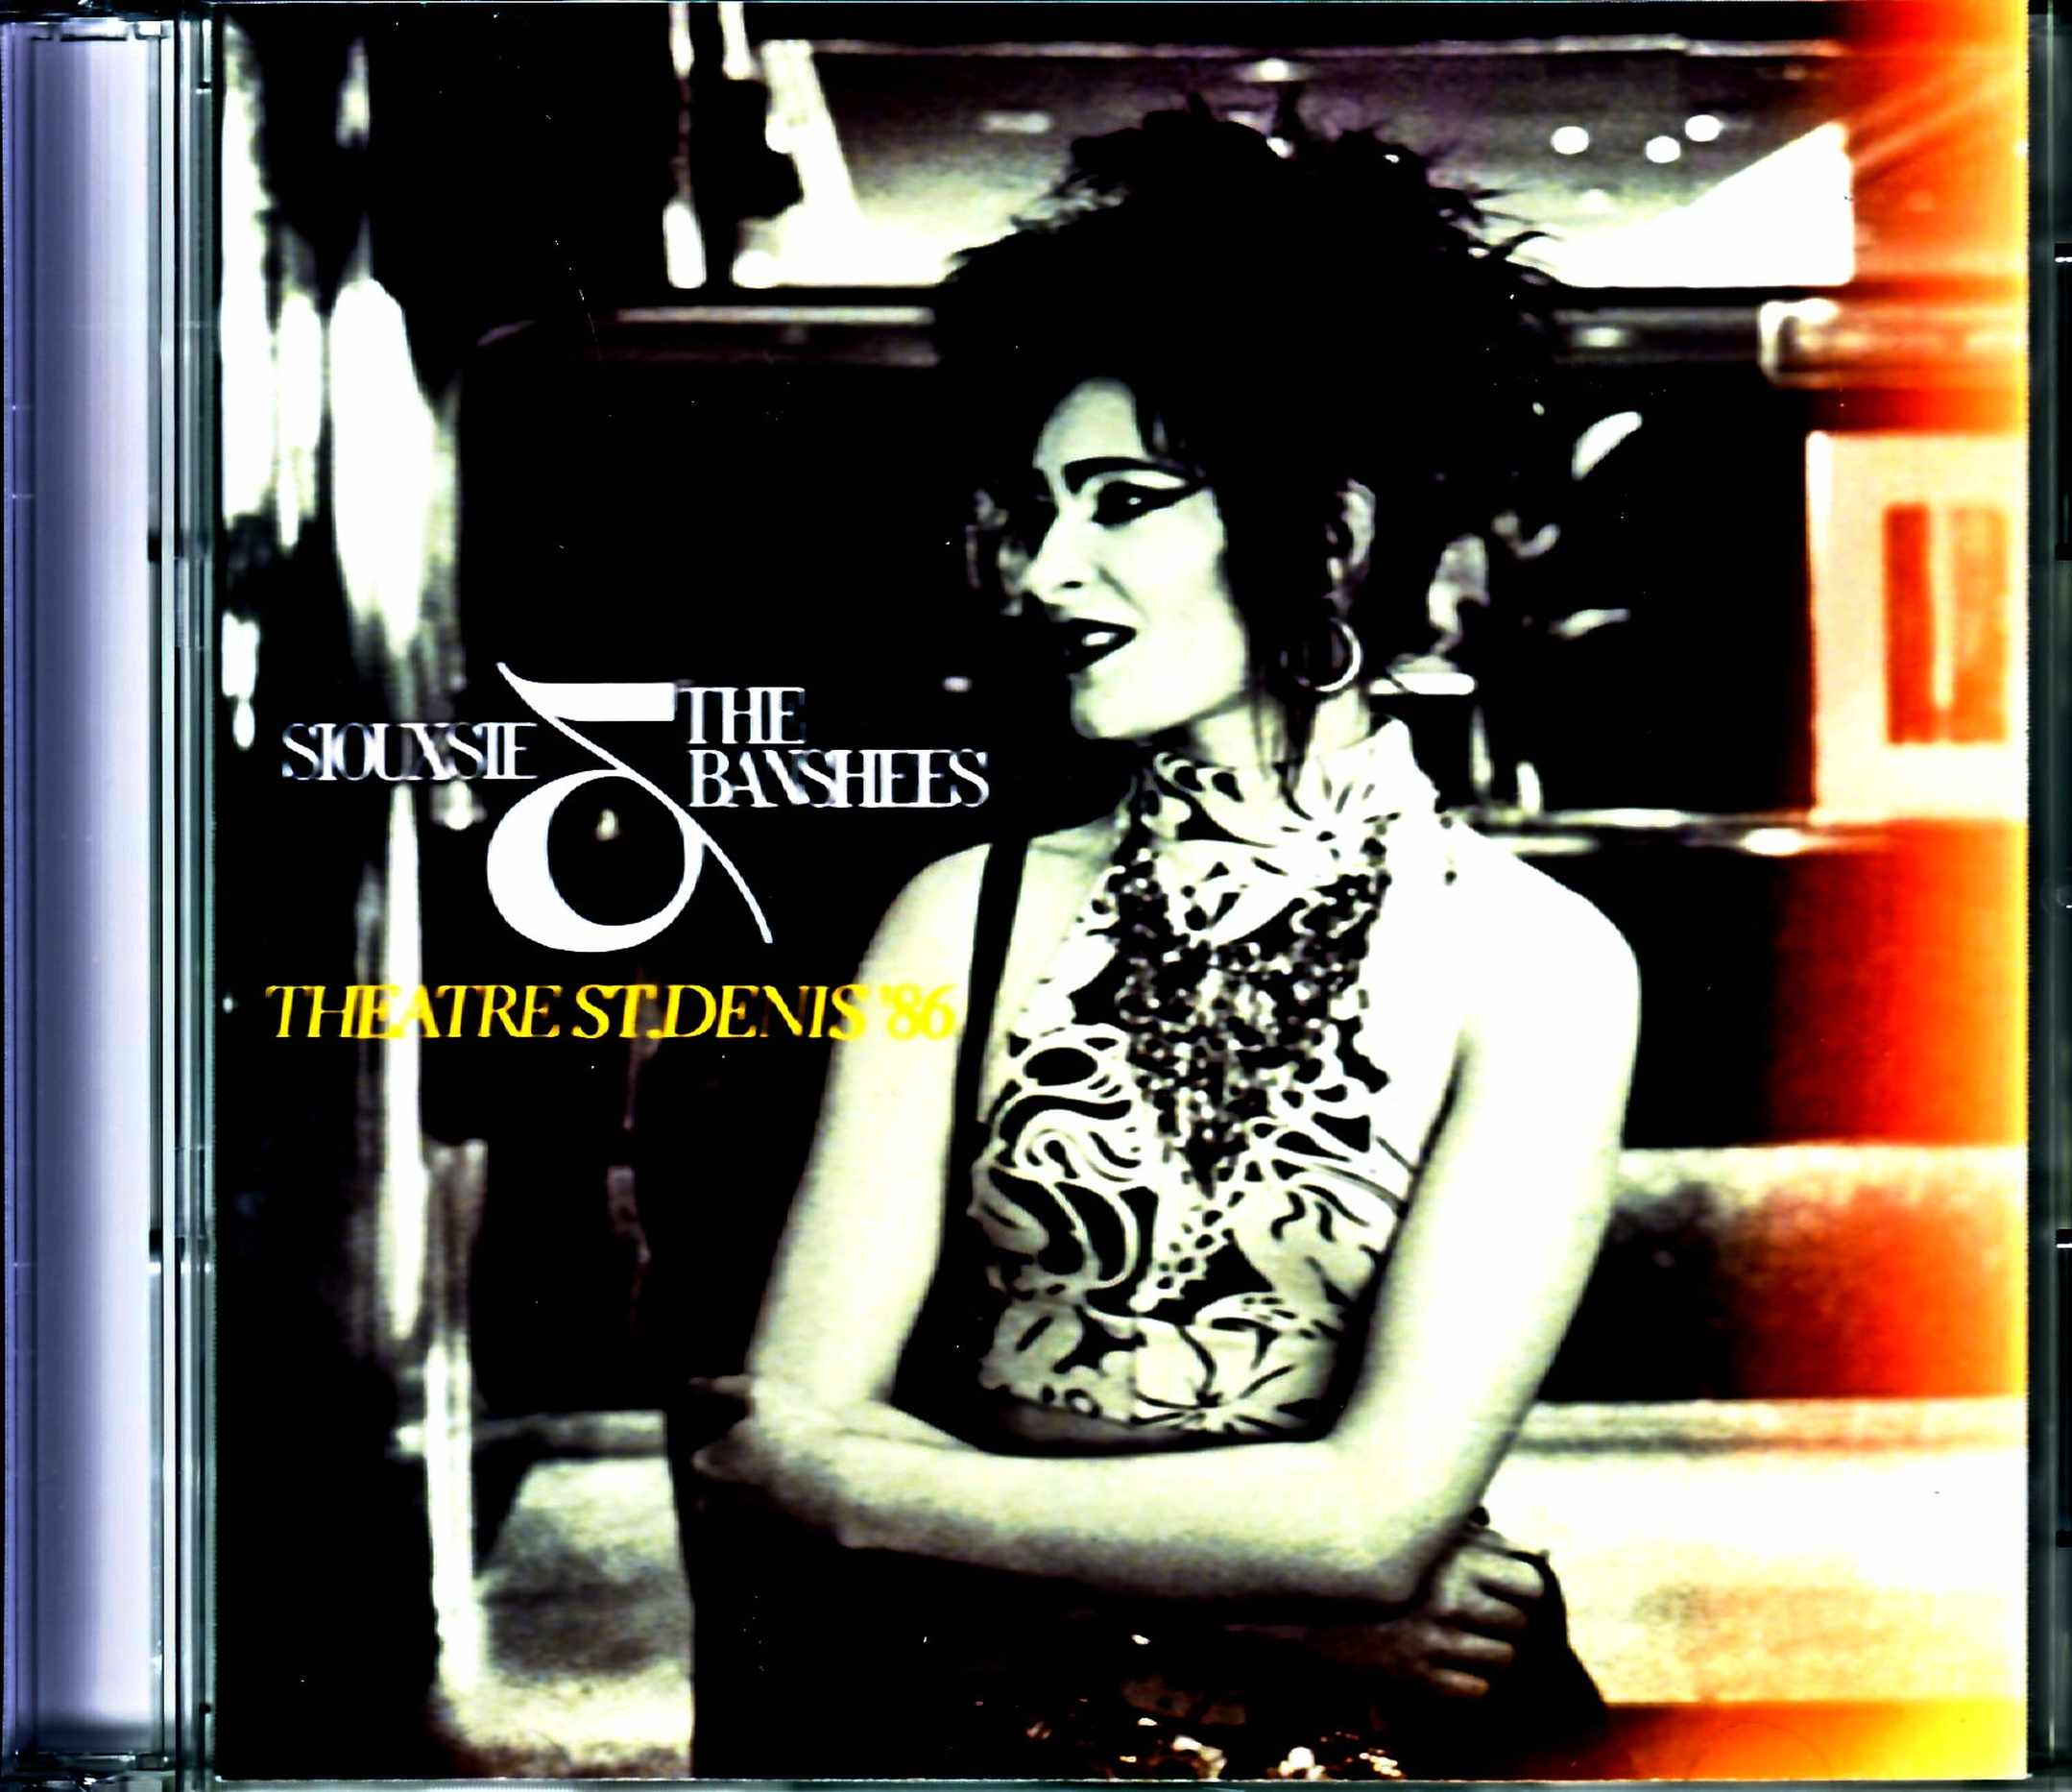 Siouxsie and the Banshees スージー・アンド・ザ・バンシーズ/Canada 1986 Complete